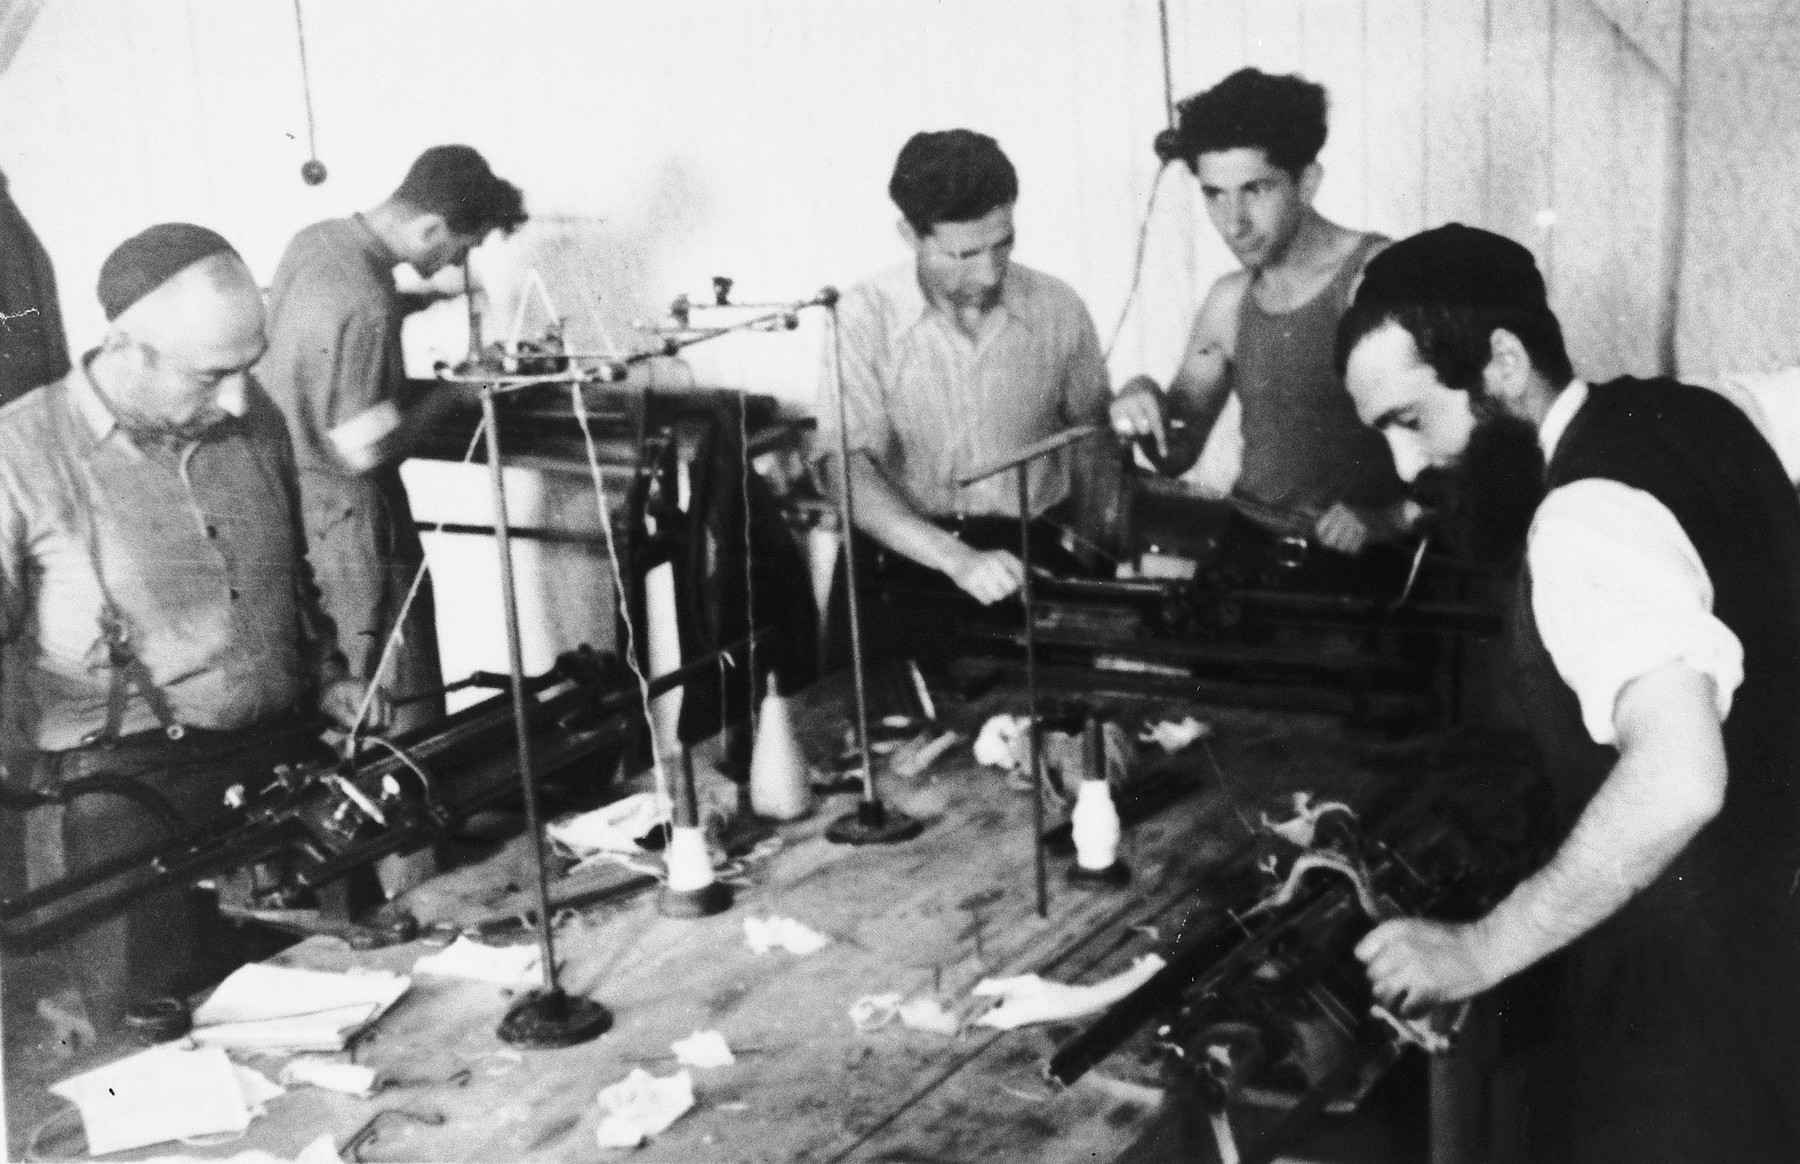 Men learn industrial knitting in an ORT vocational program in the Windsheim displaced persons' camp.  Among those pictured is Yidl Weinstein.